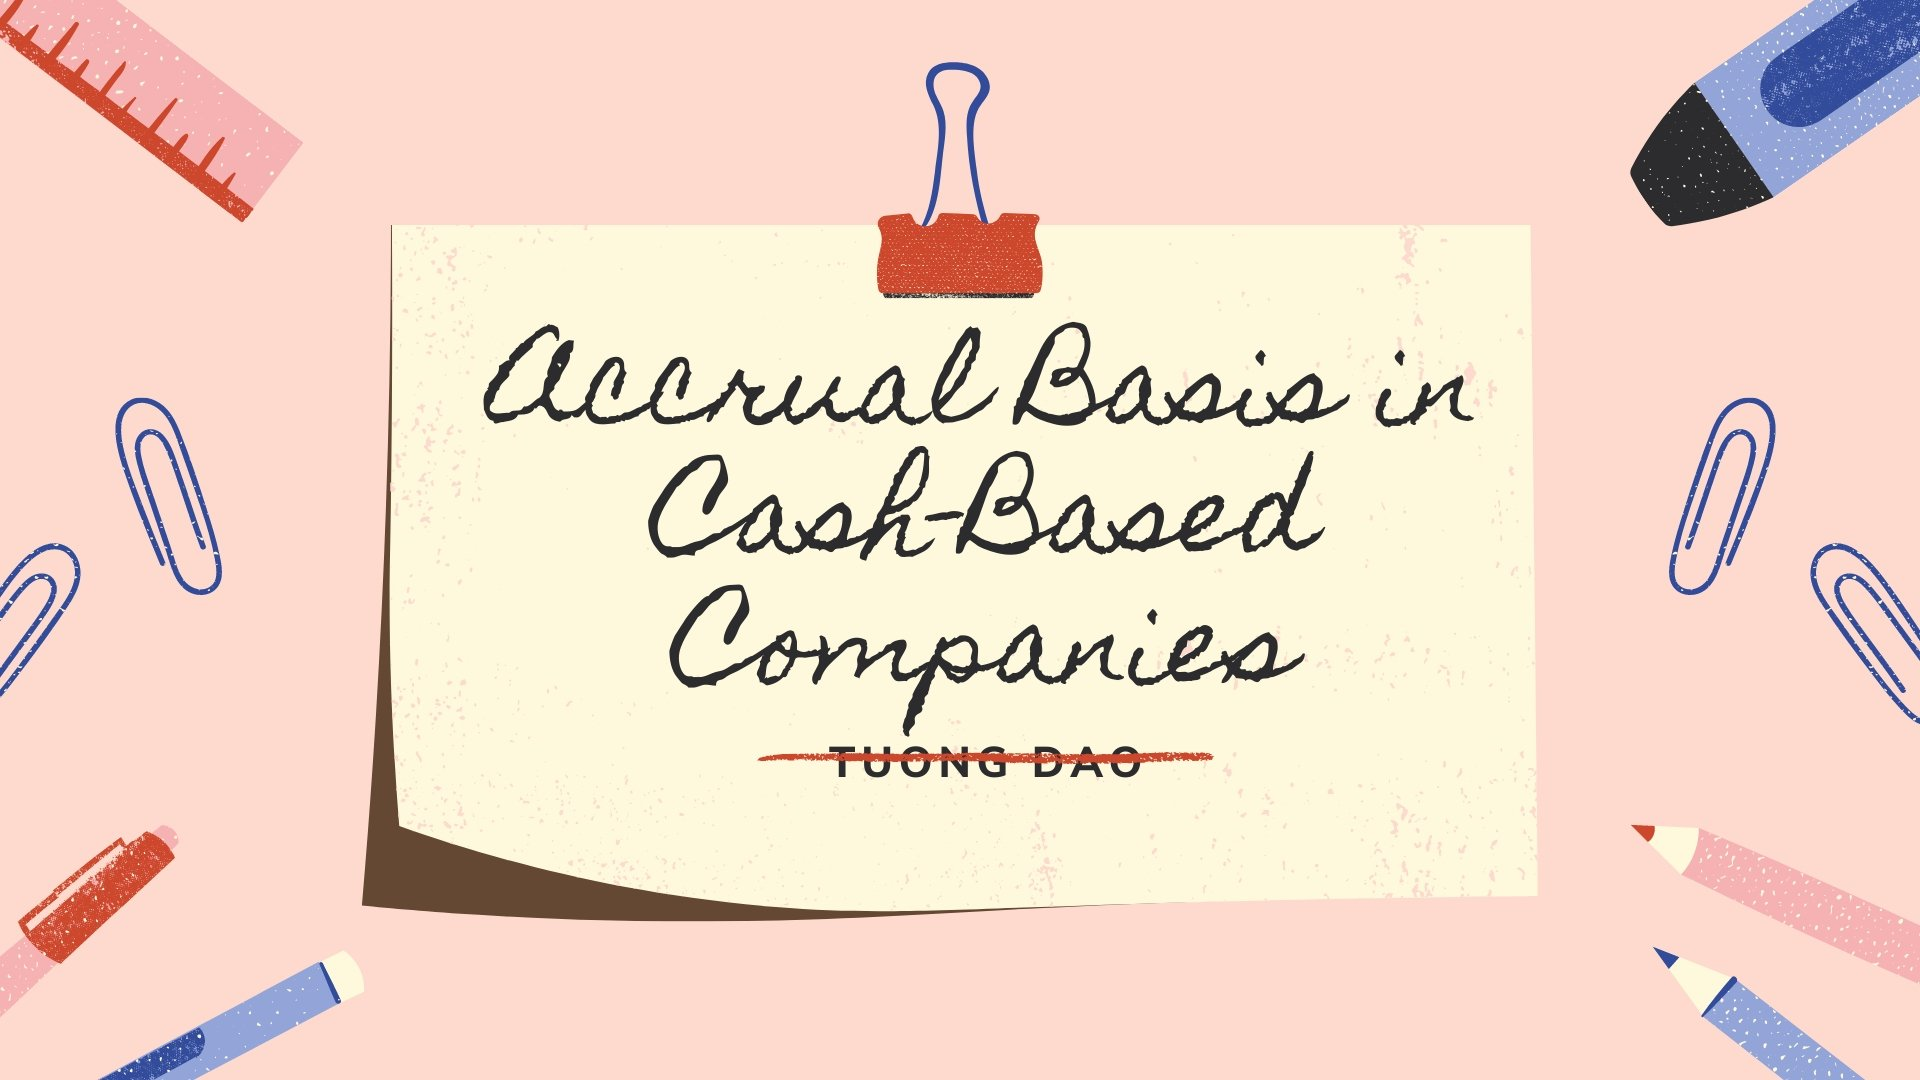 Accrual Basis in Cash-Based Companies